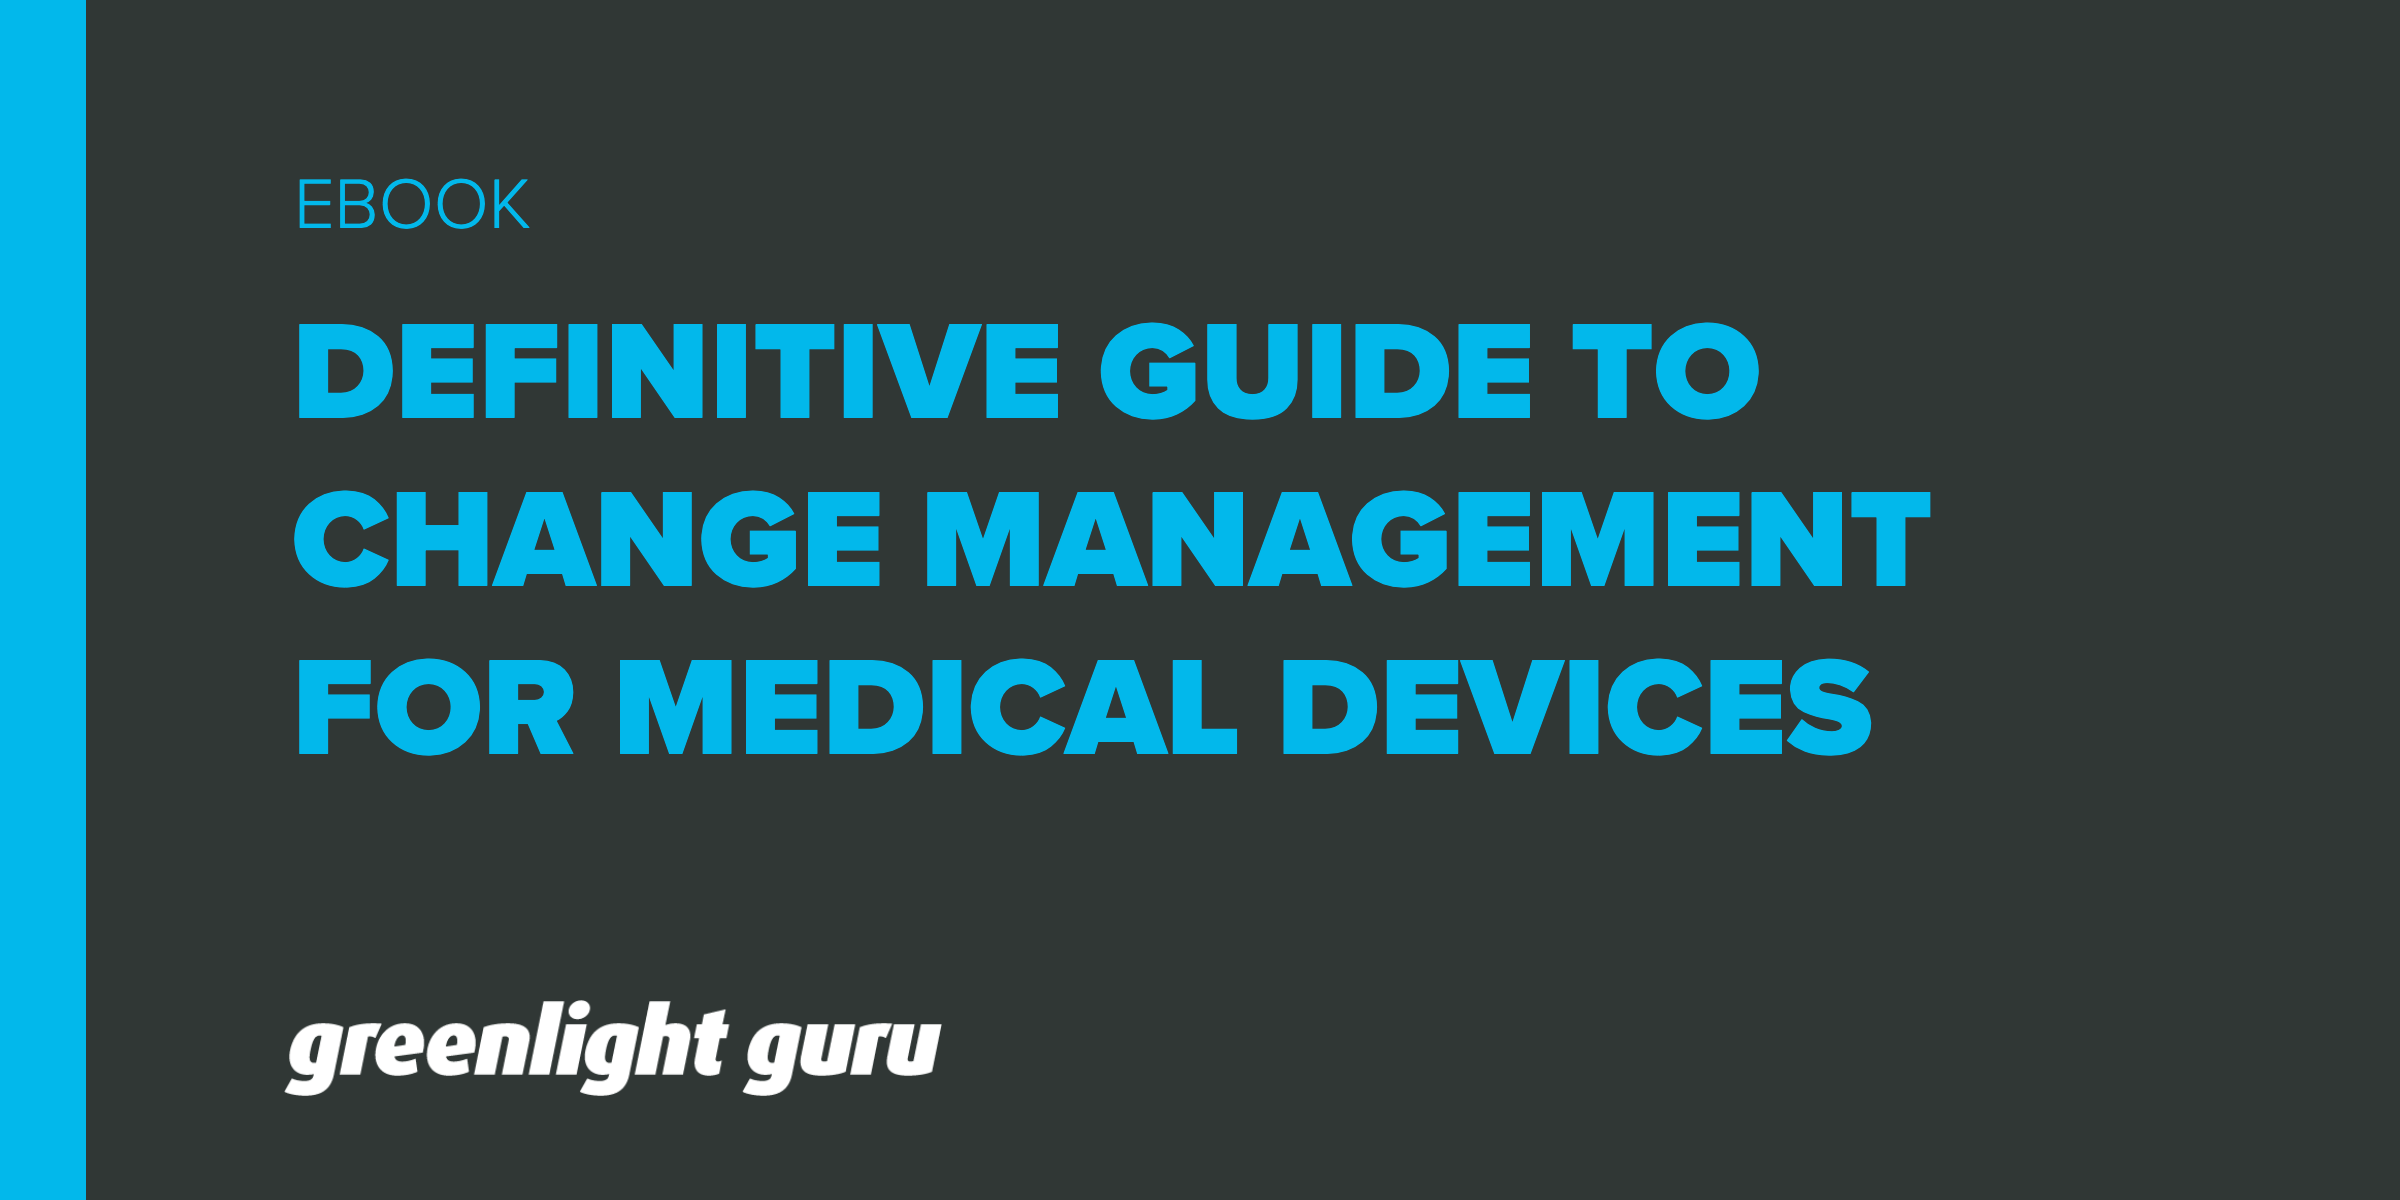 Definitive Guide to Change Management for Medical Devices